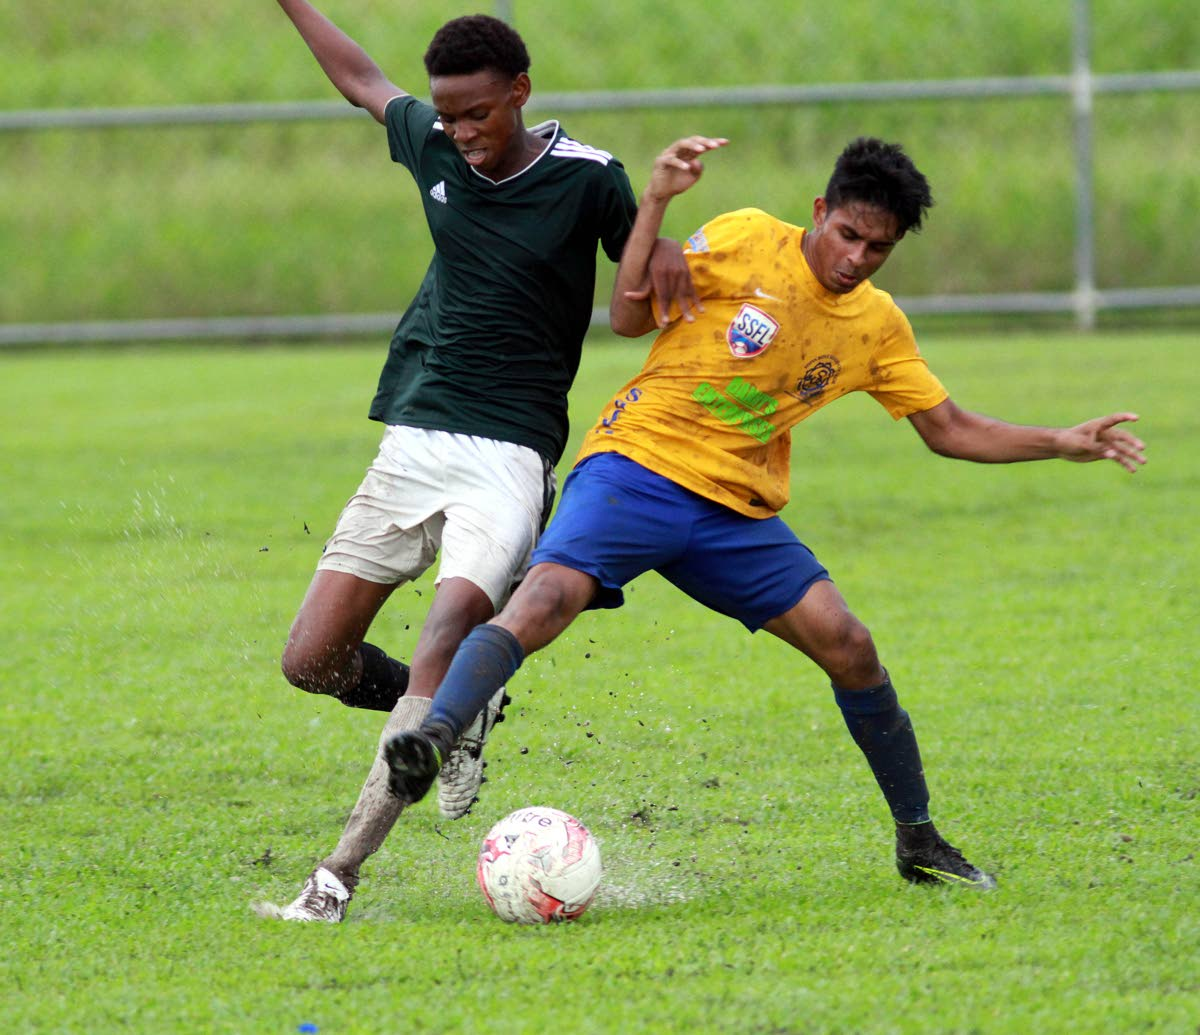 A Shiva Boys' player battles with his opponent from Rio Claro West during a SSFL South Zone Under-20 match on Friday at the Manny Ramjohn Stadium Training Ground, Marabella.